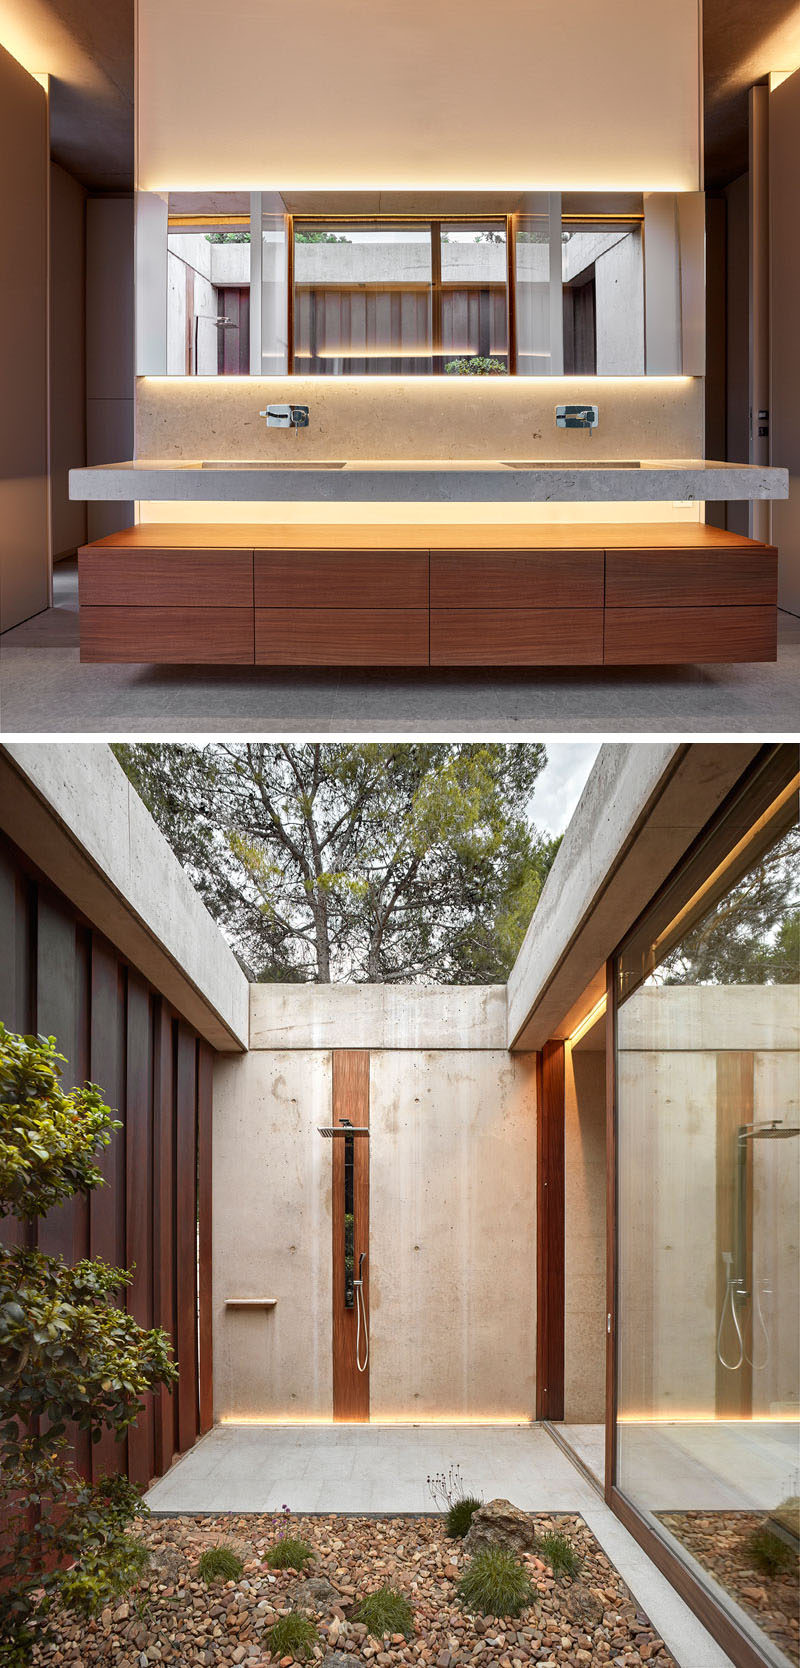 In this modern bathroom, the large double sink floating vanity and mirror are backlit, creating a calming ambiance. There's also an outdoor shower which also has hidden lighting.